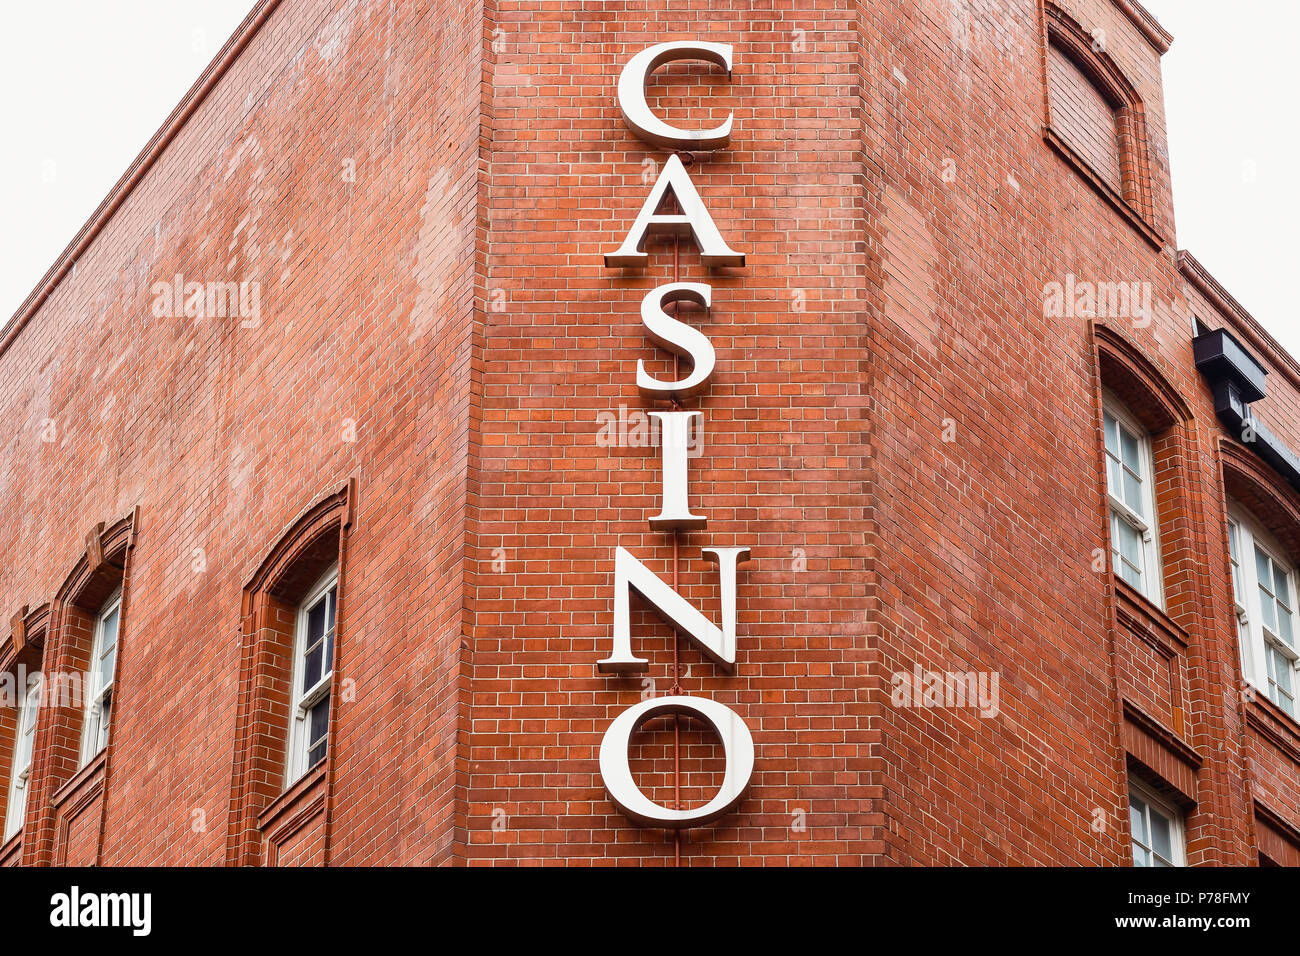 Casino sign in London Chinatown - Stock Image